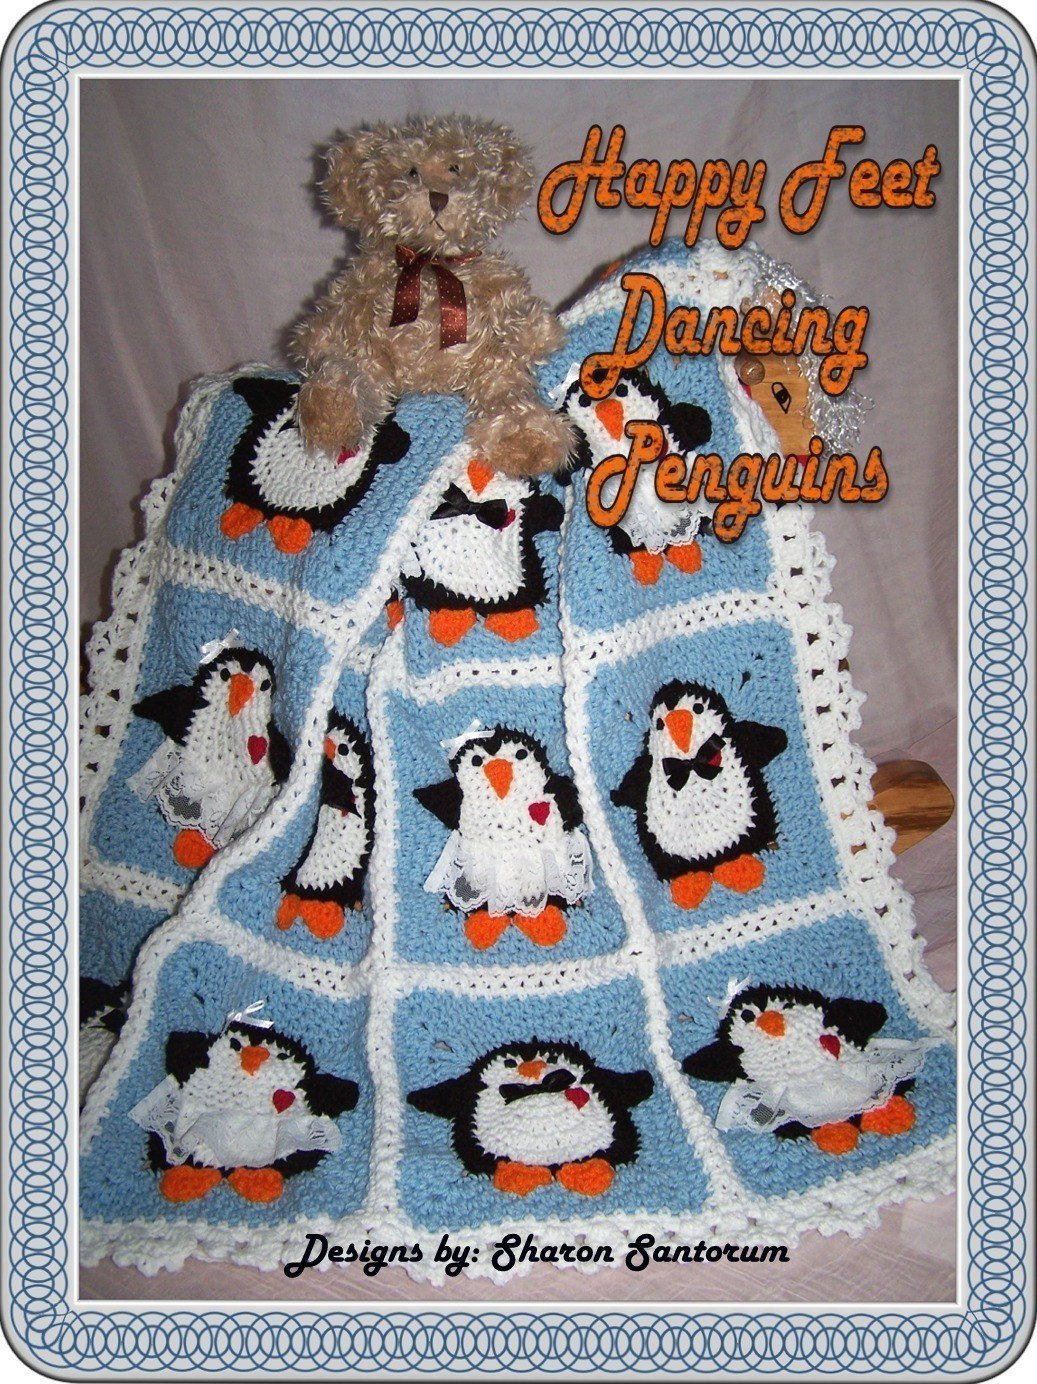 Baby Boy Crochet Blanket Patterns Beautiful Dancing Penguins Crochet Baby Afghan or Blanket Pattern Pdf Of Baby Boy Crochet Blanket Patterns Elegant Fiber Flux Beautiful Blankets 30 Free Crochet Blanket